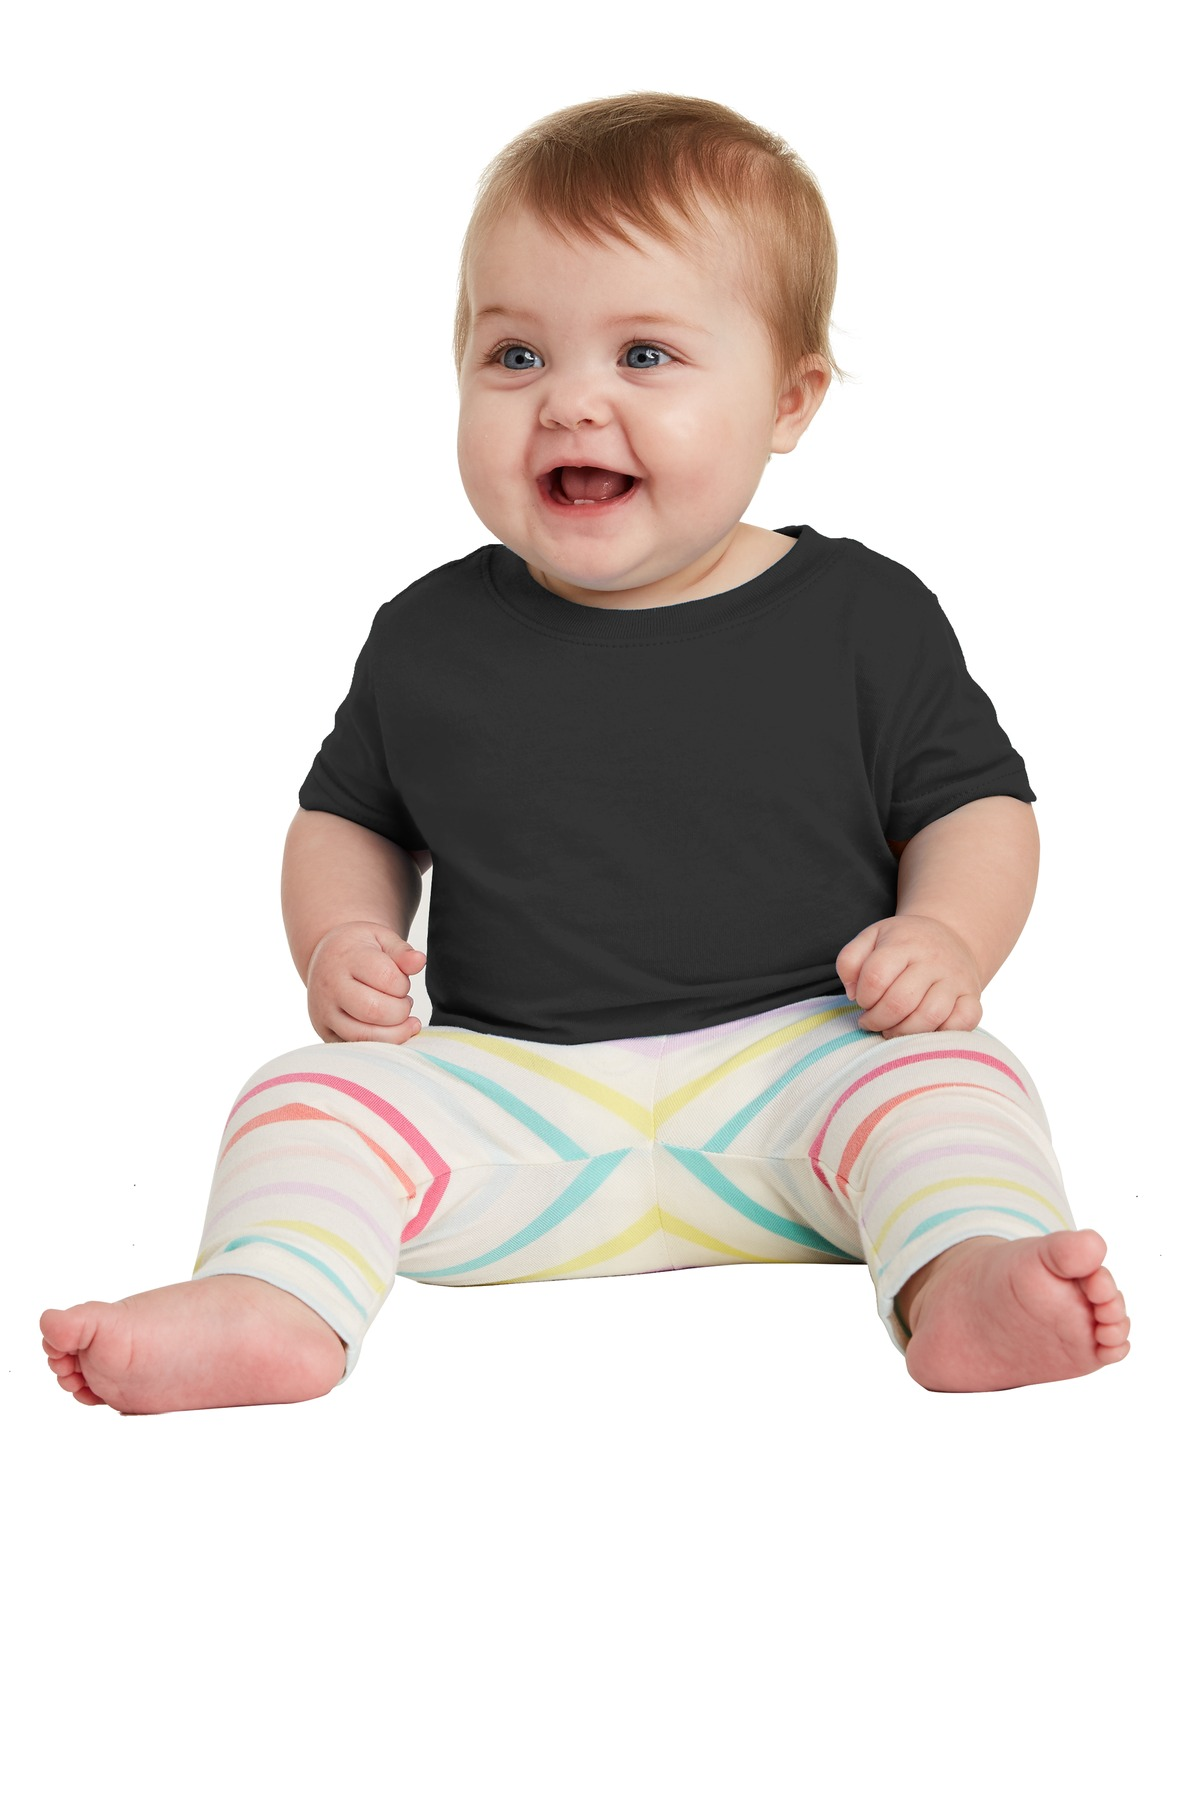 Rabbit Skins ™  Infant Fine Jersey Tee. RS3322 - Black